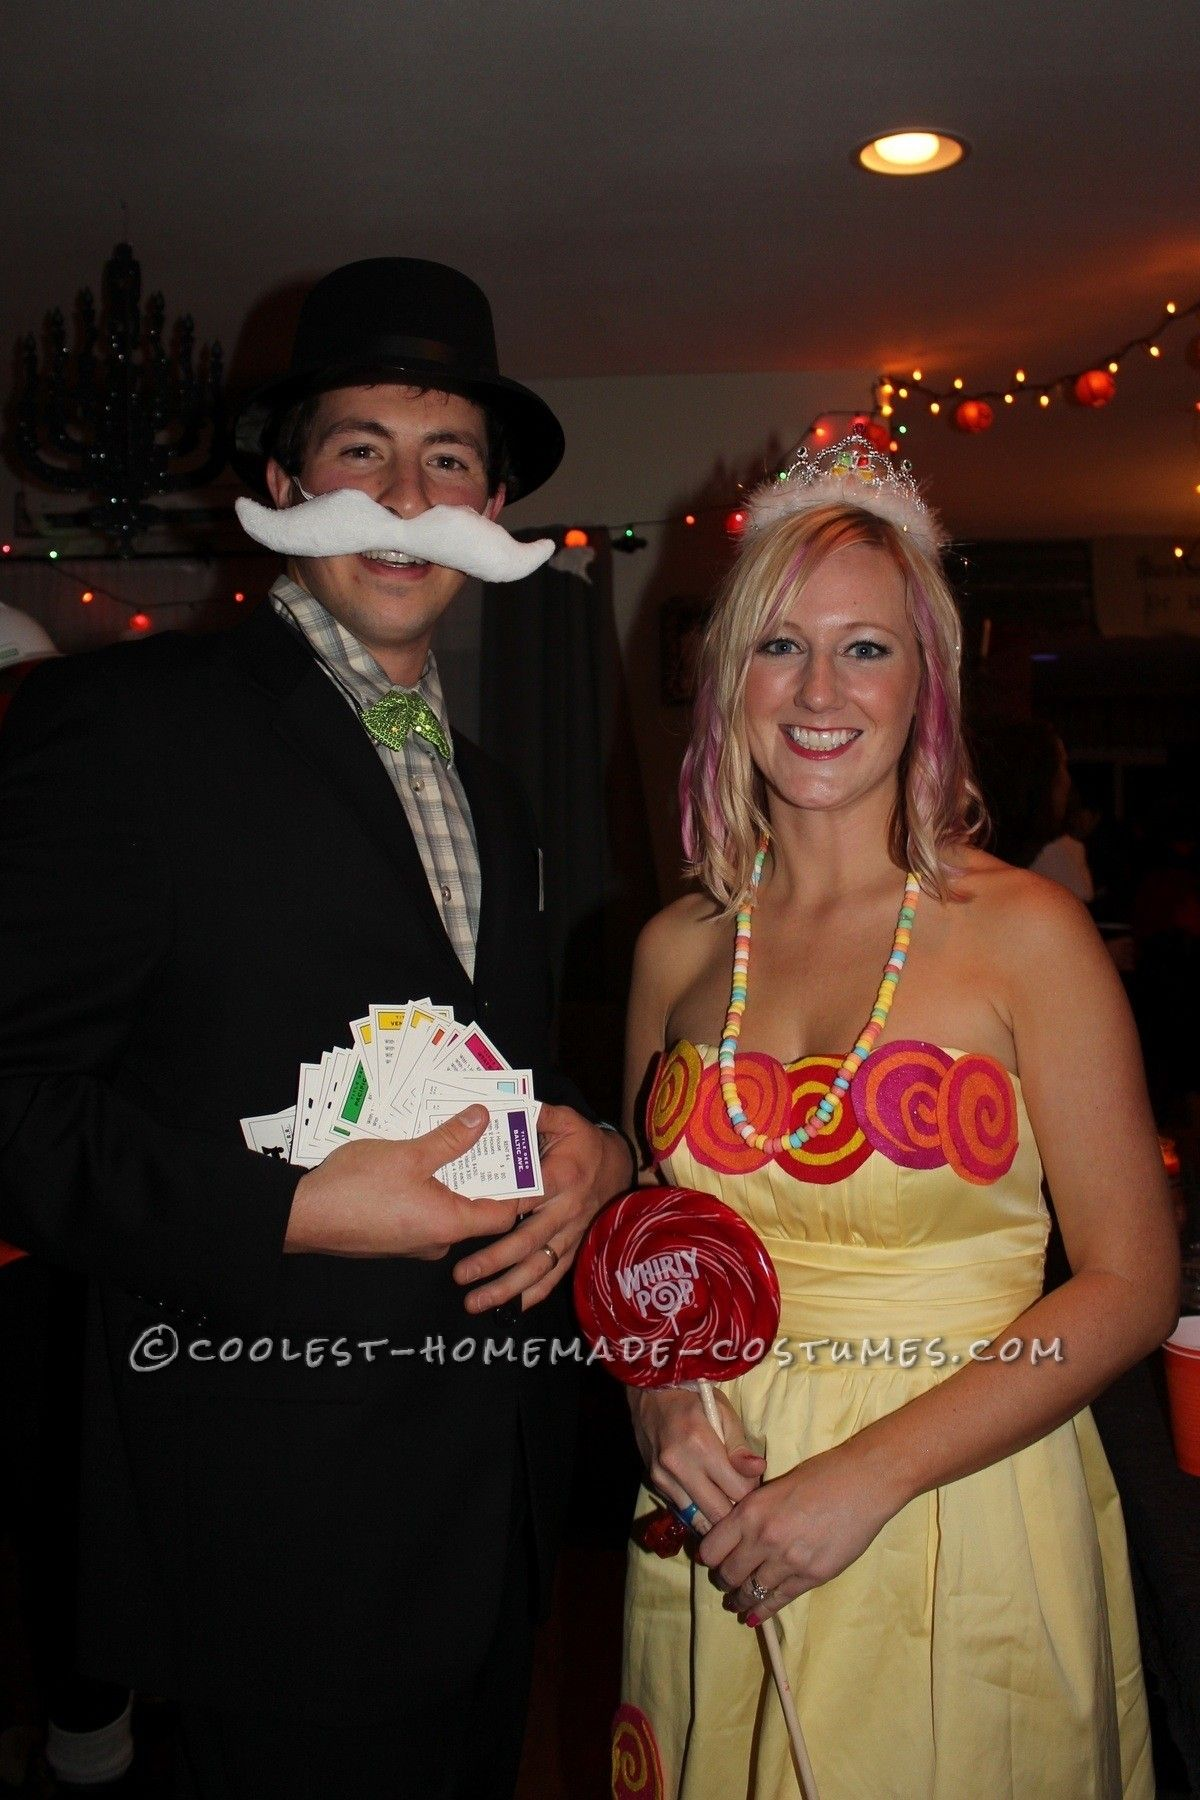 Original Couple Costume Idea Mr Monopoly and Princess Lolli from Candy Land... This website is the Pinterest of costumes  sc 1 st  Pinterest & Original Couple Costume Idea: Mr Monopoly and Princess Lolli from ...